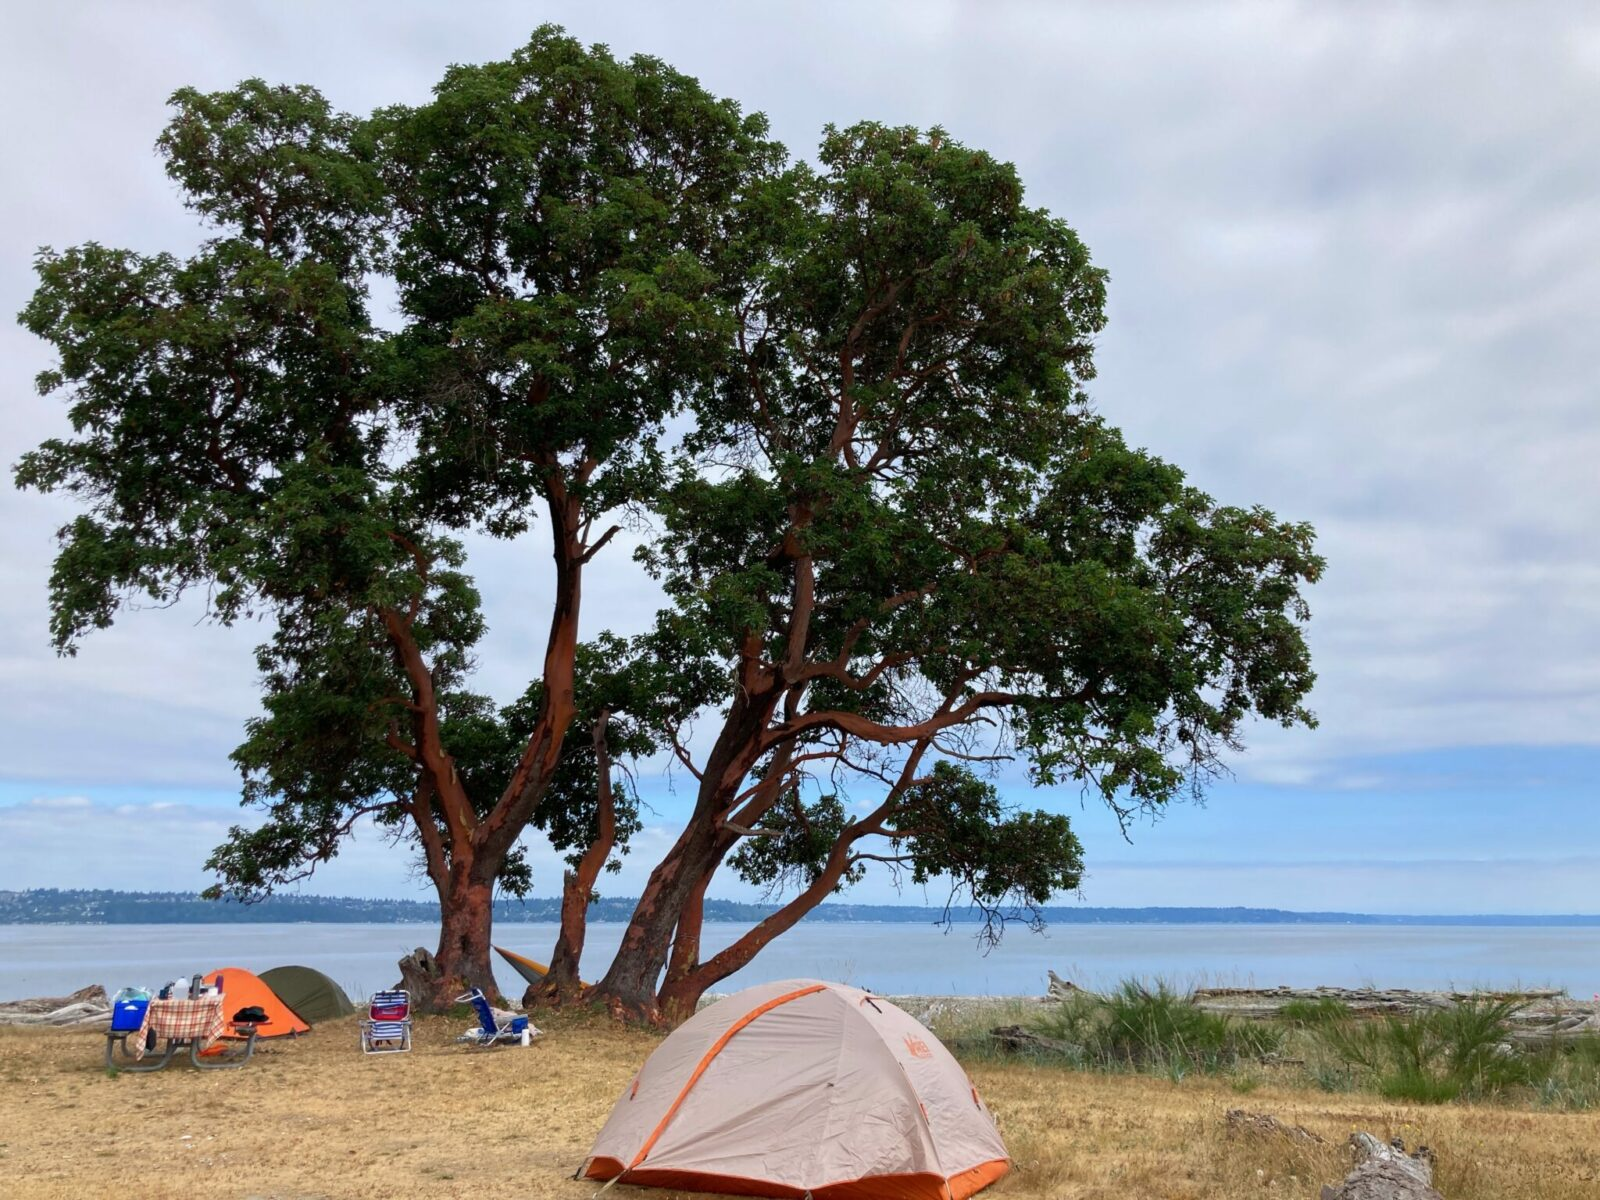 A campsite at Blake Island State Park. There are there tents in dry grass under a large madrona tree. The campsite is at the beach and the water and distant forested land are in the background